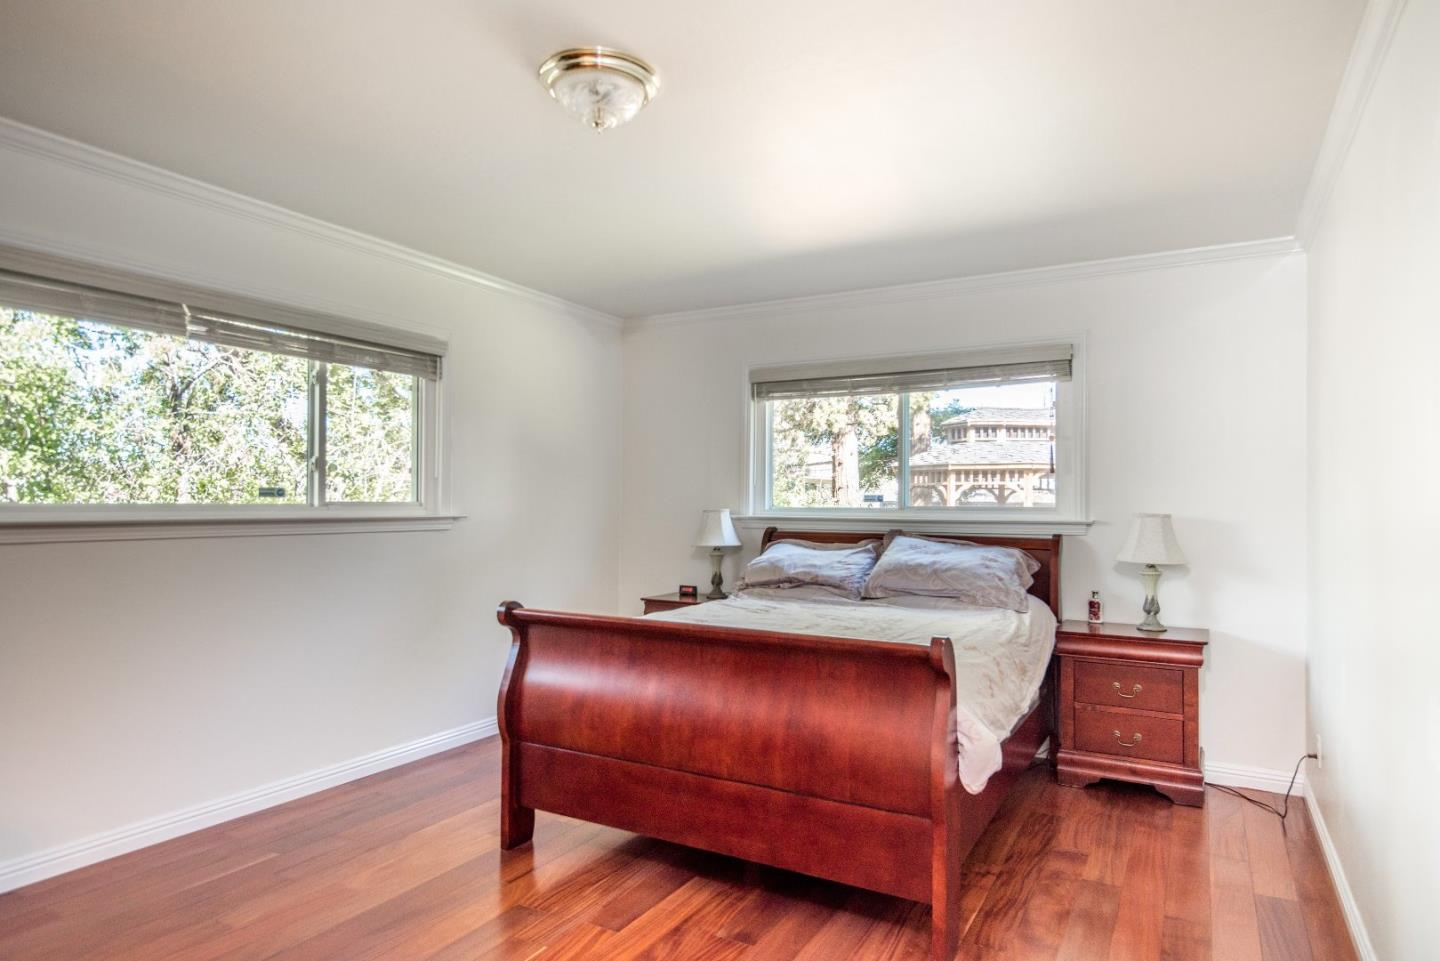 Additional photo for property listing at 20025 Glen Brae Dr  SARATOGA, CALIFORNIA 95070